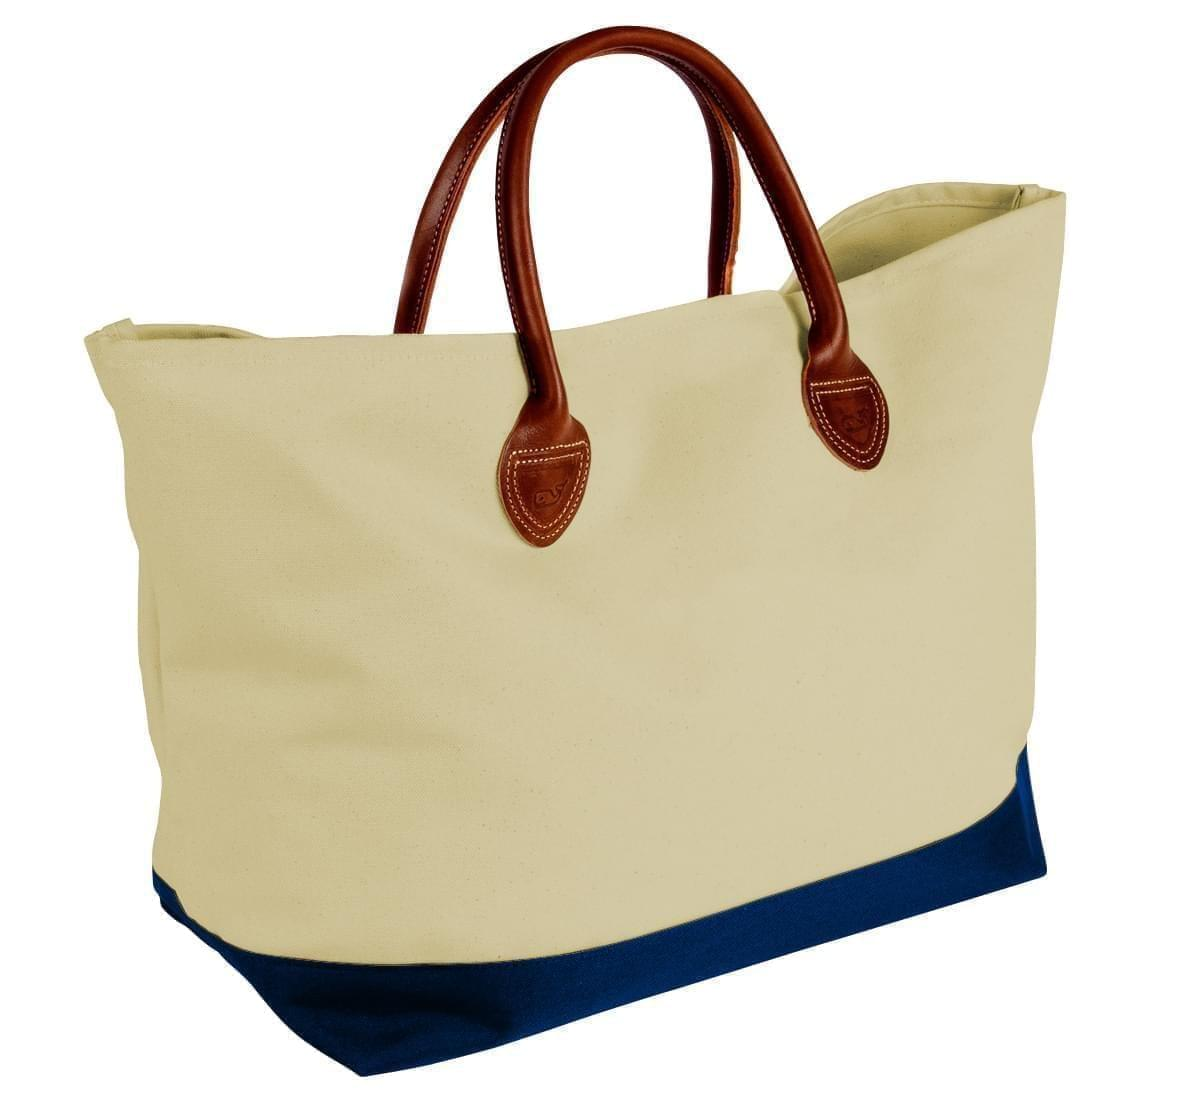 USA Made Canvas Leather Handle Totes, Natural-Navy, 10899-IK9